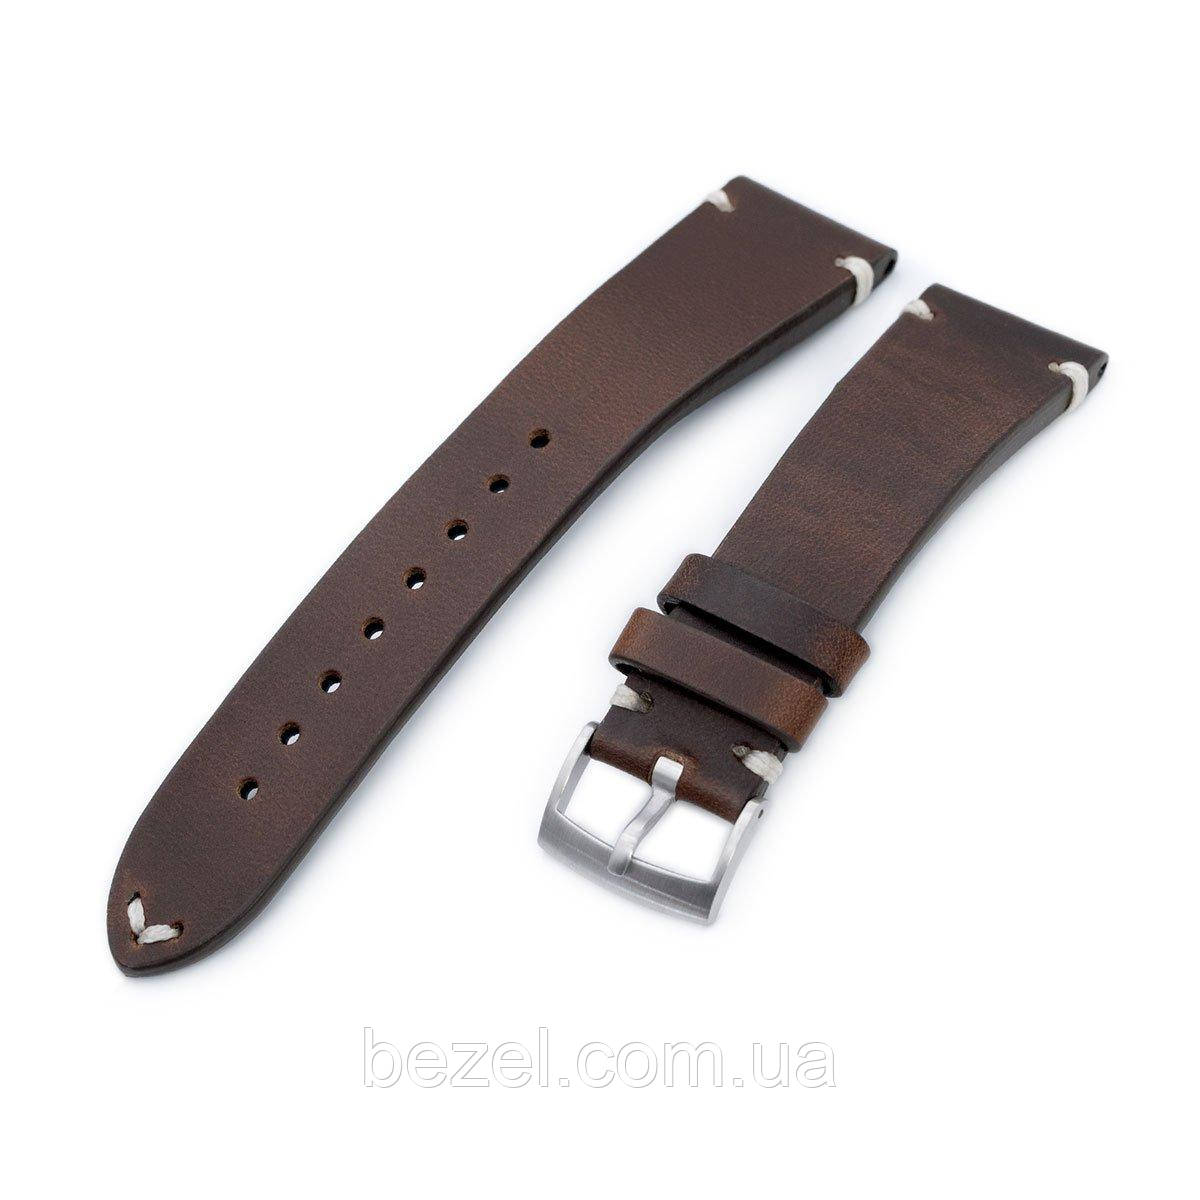 20mm, 21mm, 22mm MiLTAT Horween Chromexcel Watch Strap, Burgundy Brown, Beige Stitching